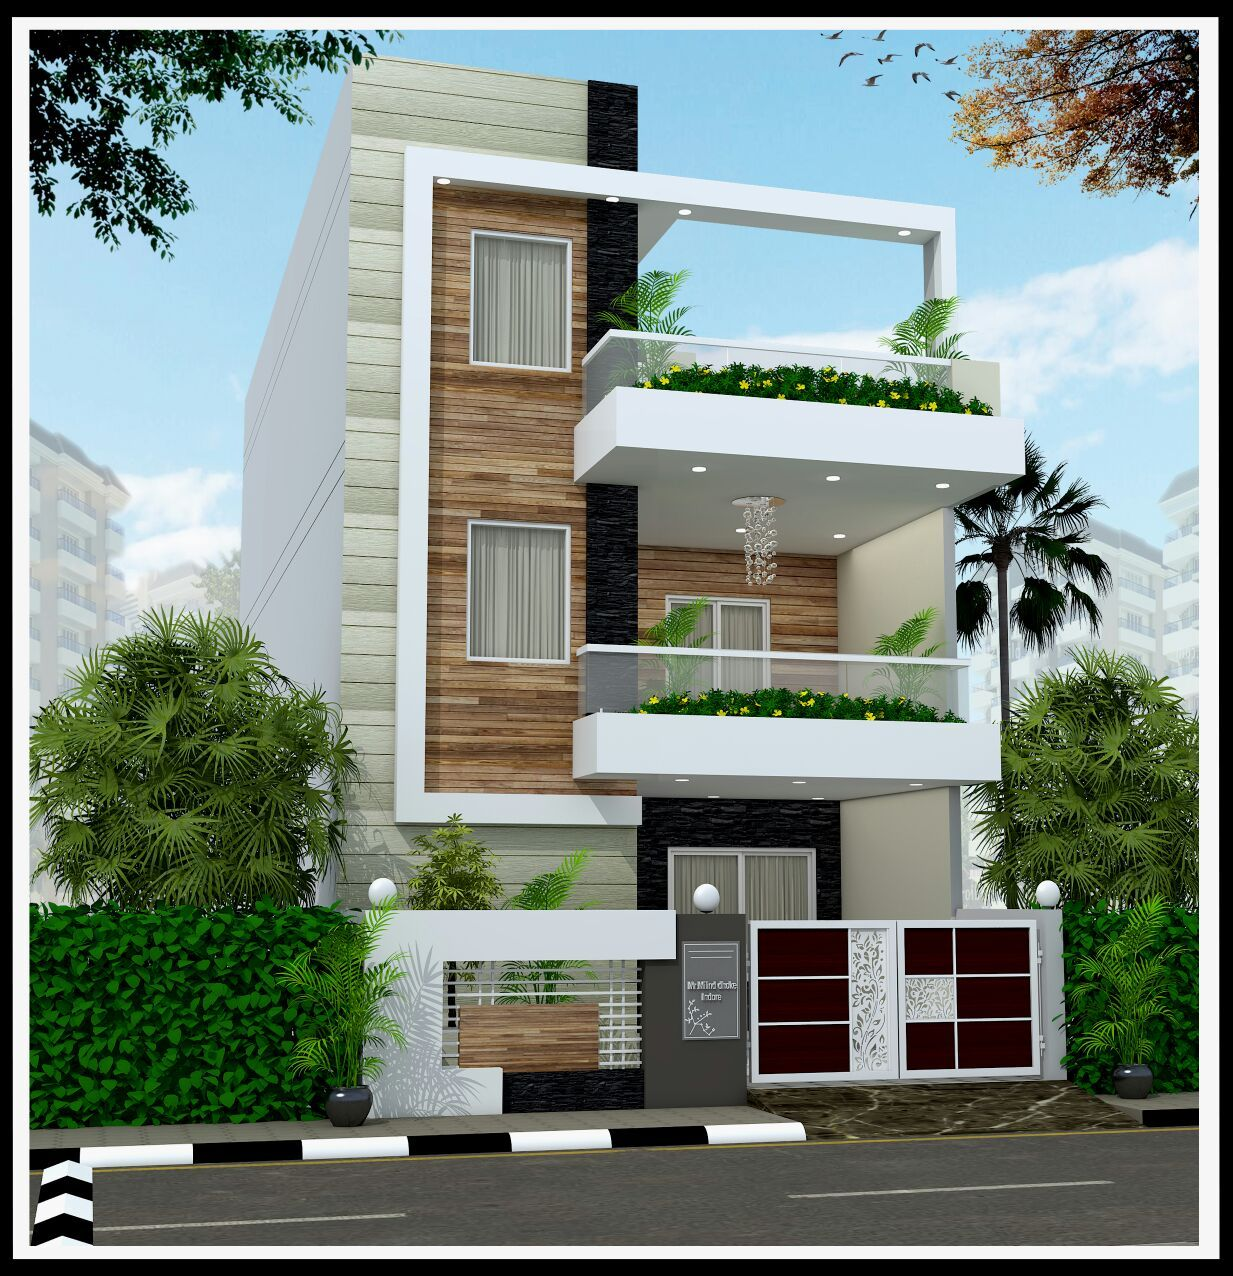 Home Design Exterior Ideas In India: 22 Feet By 45 Modern House Plan With 4 Bedrooms